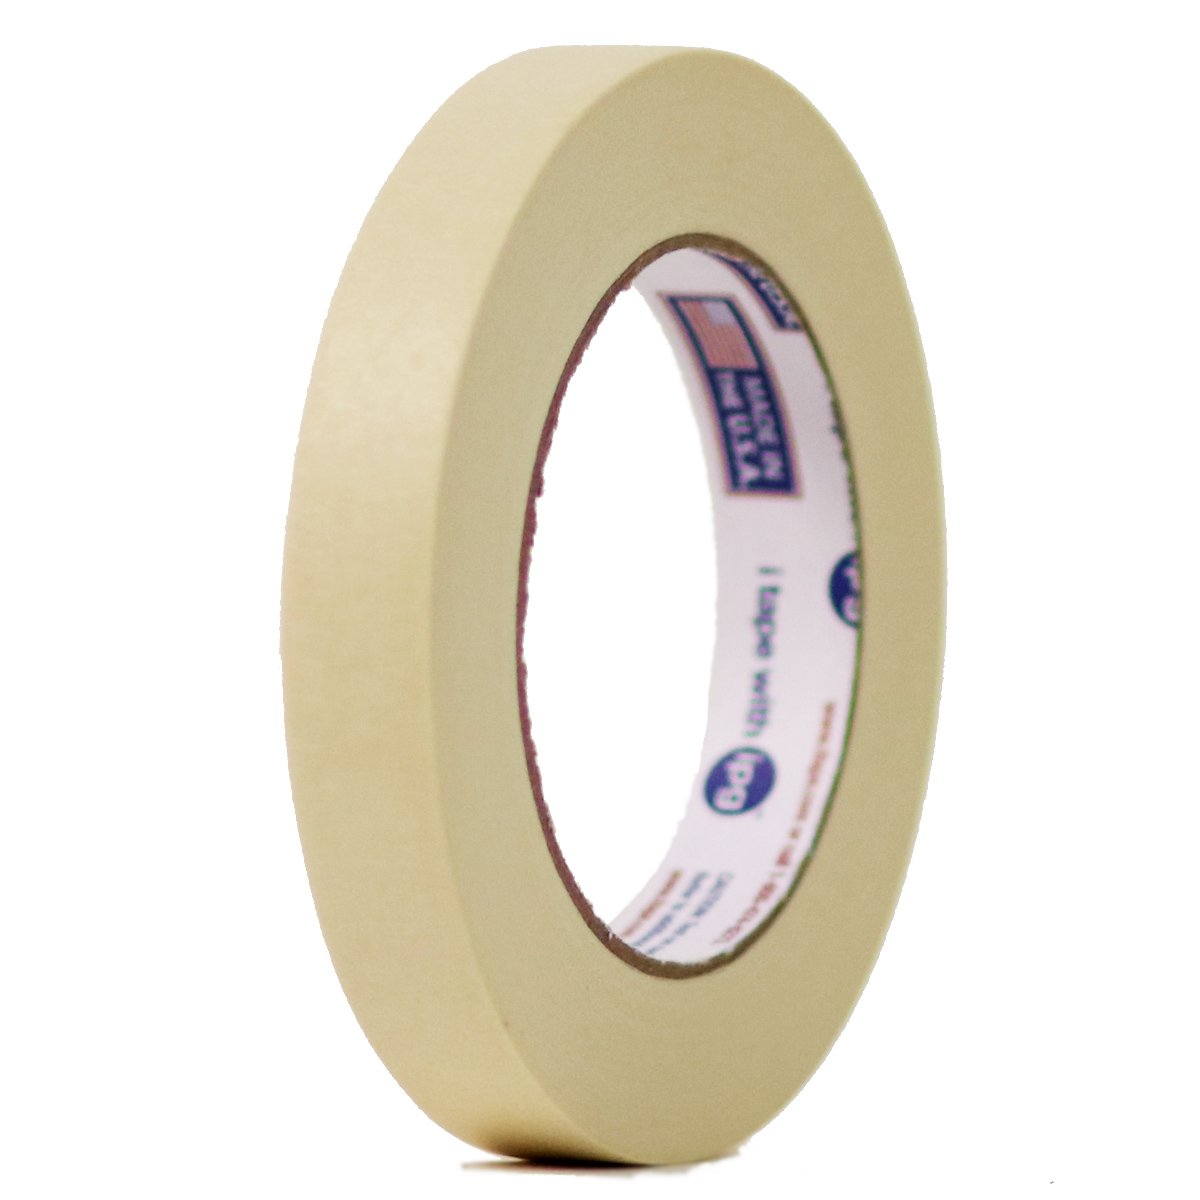 48 Rolls Intertape 513 - 3/4 Inch X 60 Yards -Industrial Professional All Purpose Utility Grade Paper Masking Tape - Natural Color - 48 Rolls per Case